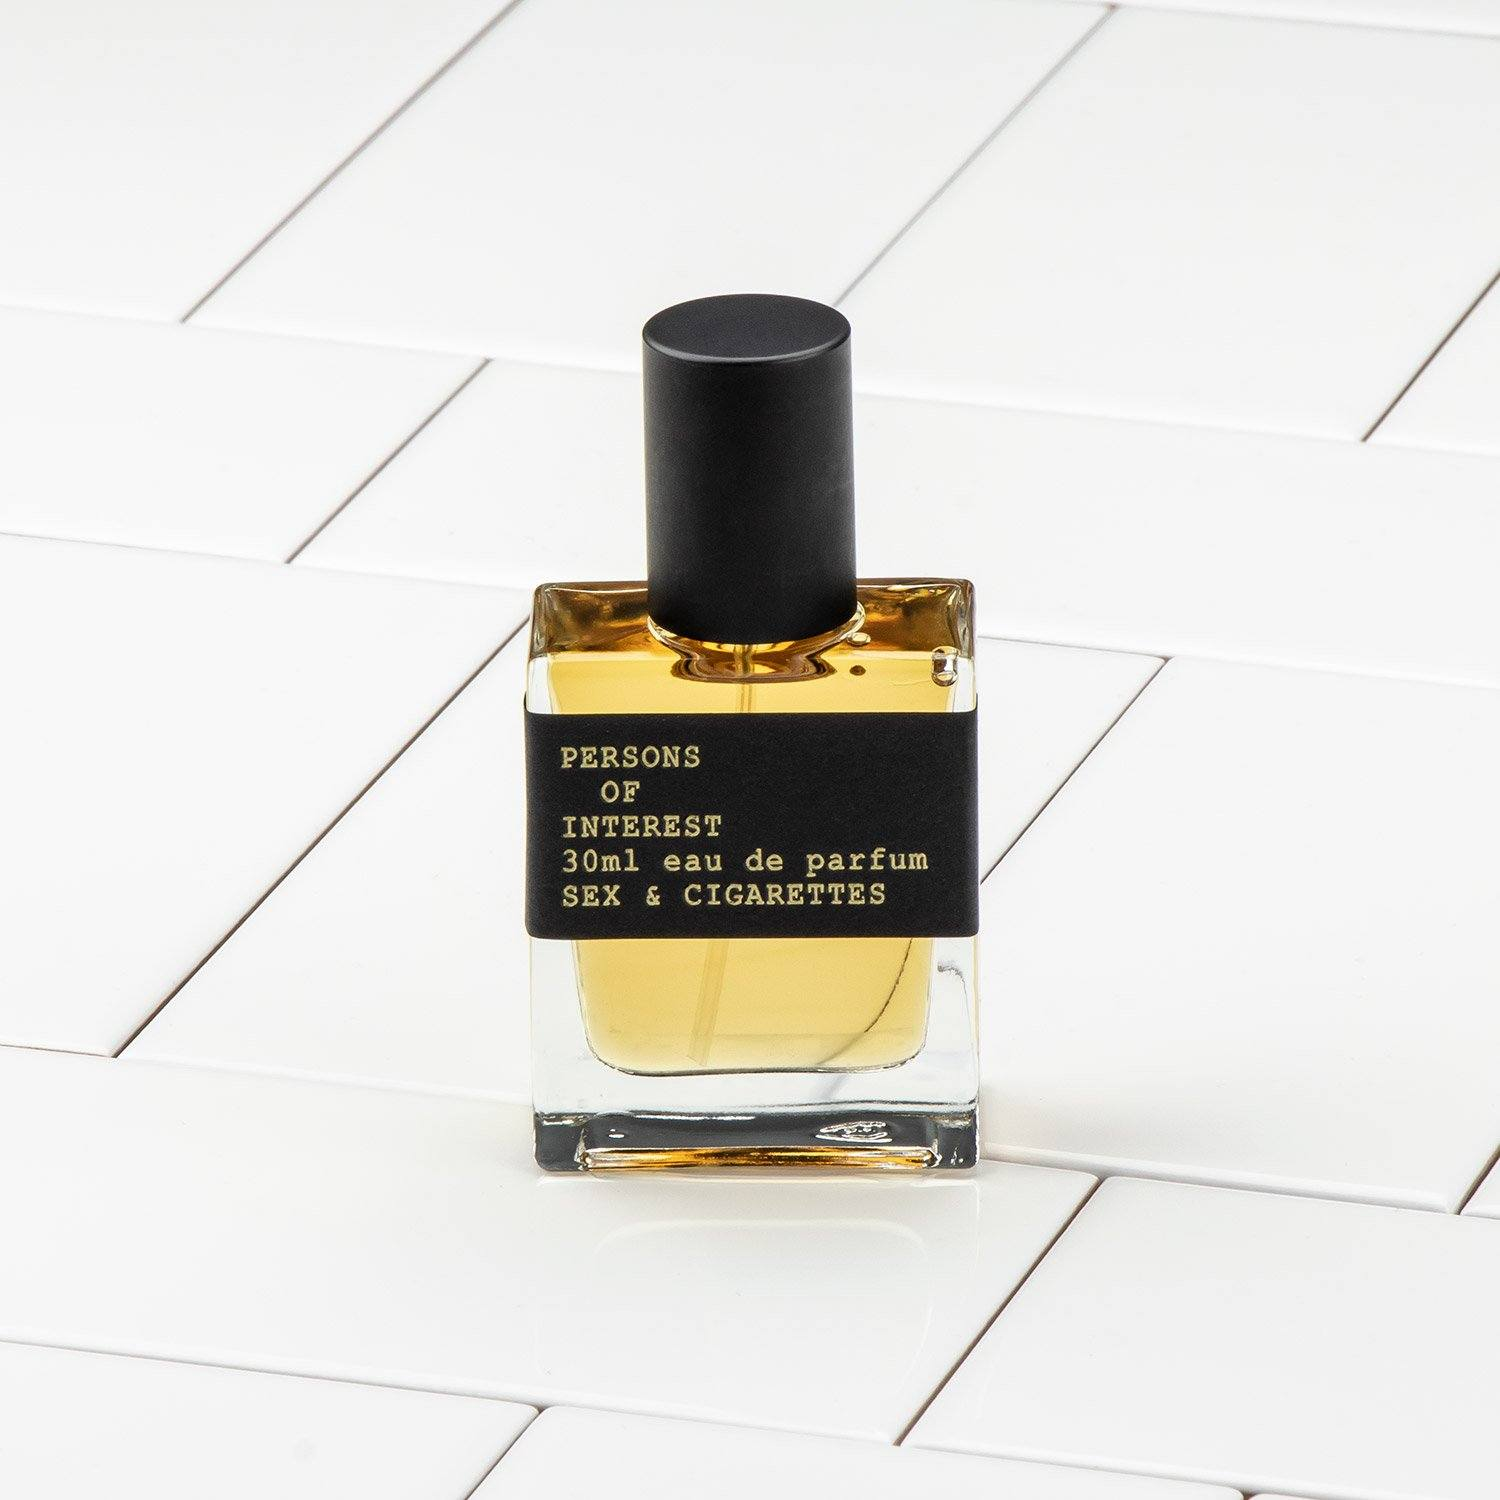 Persons of Interest Sex & Cigarettes Eau de Parfum, 30ml Bottle